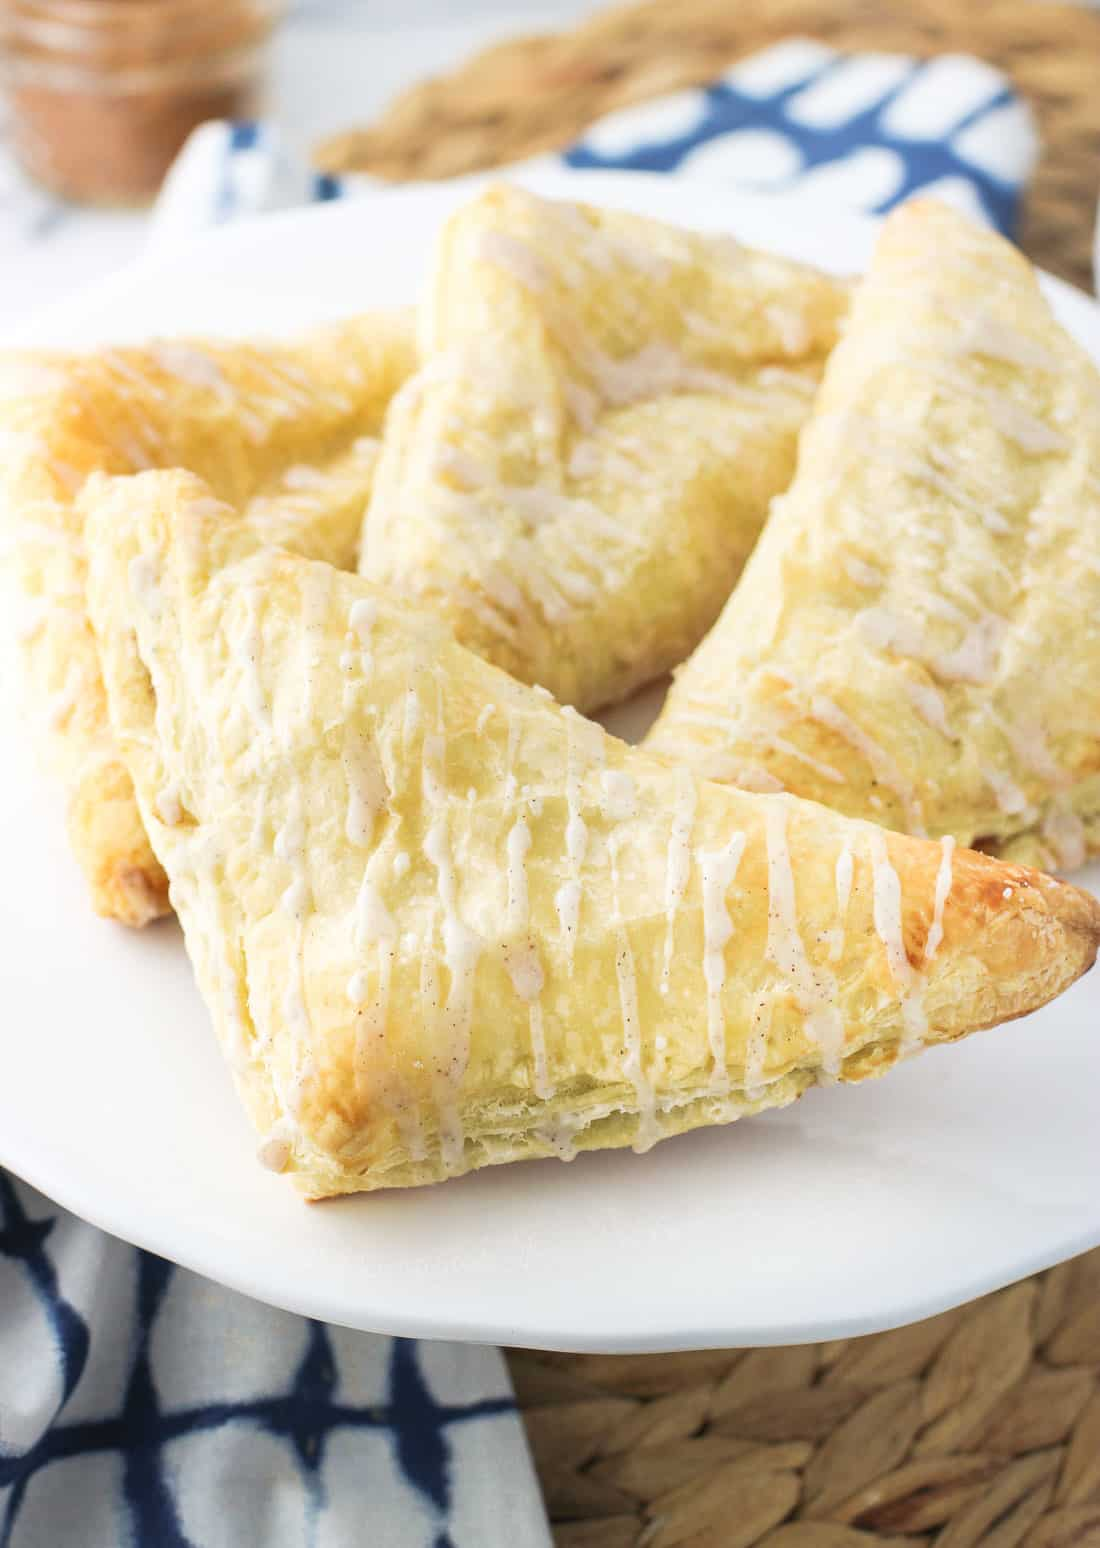 Four apple turnovers on a cake stand.